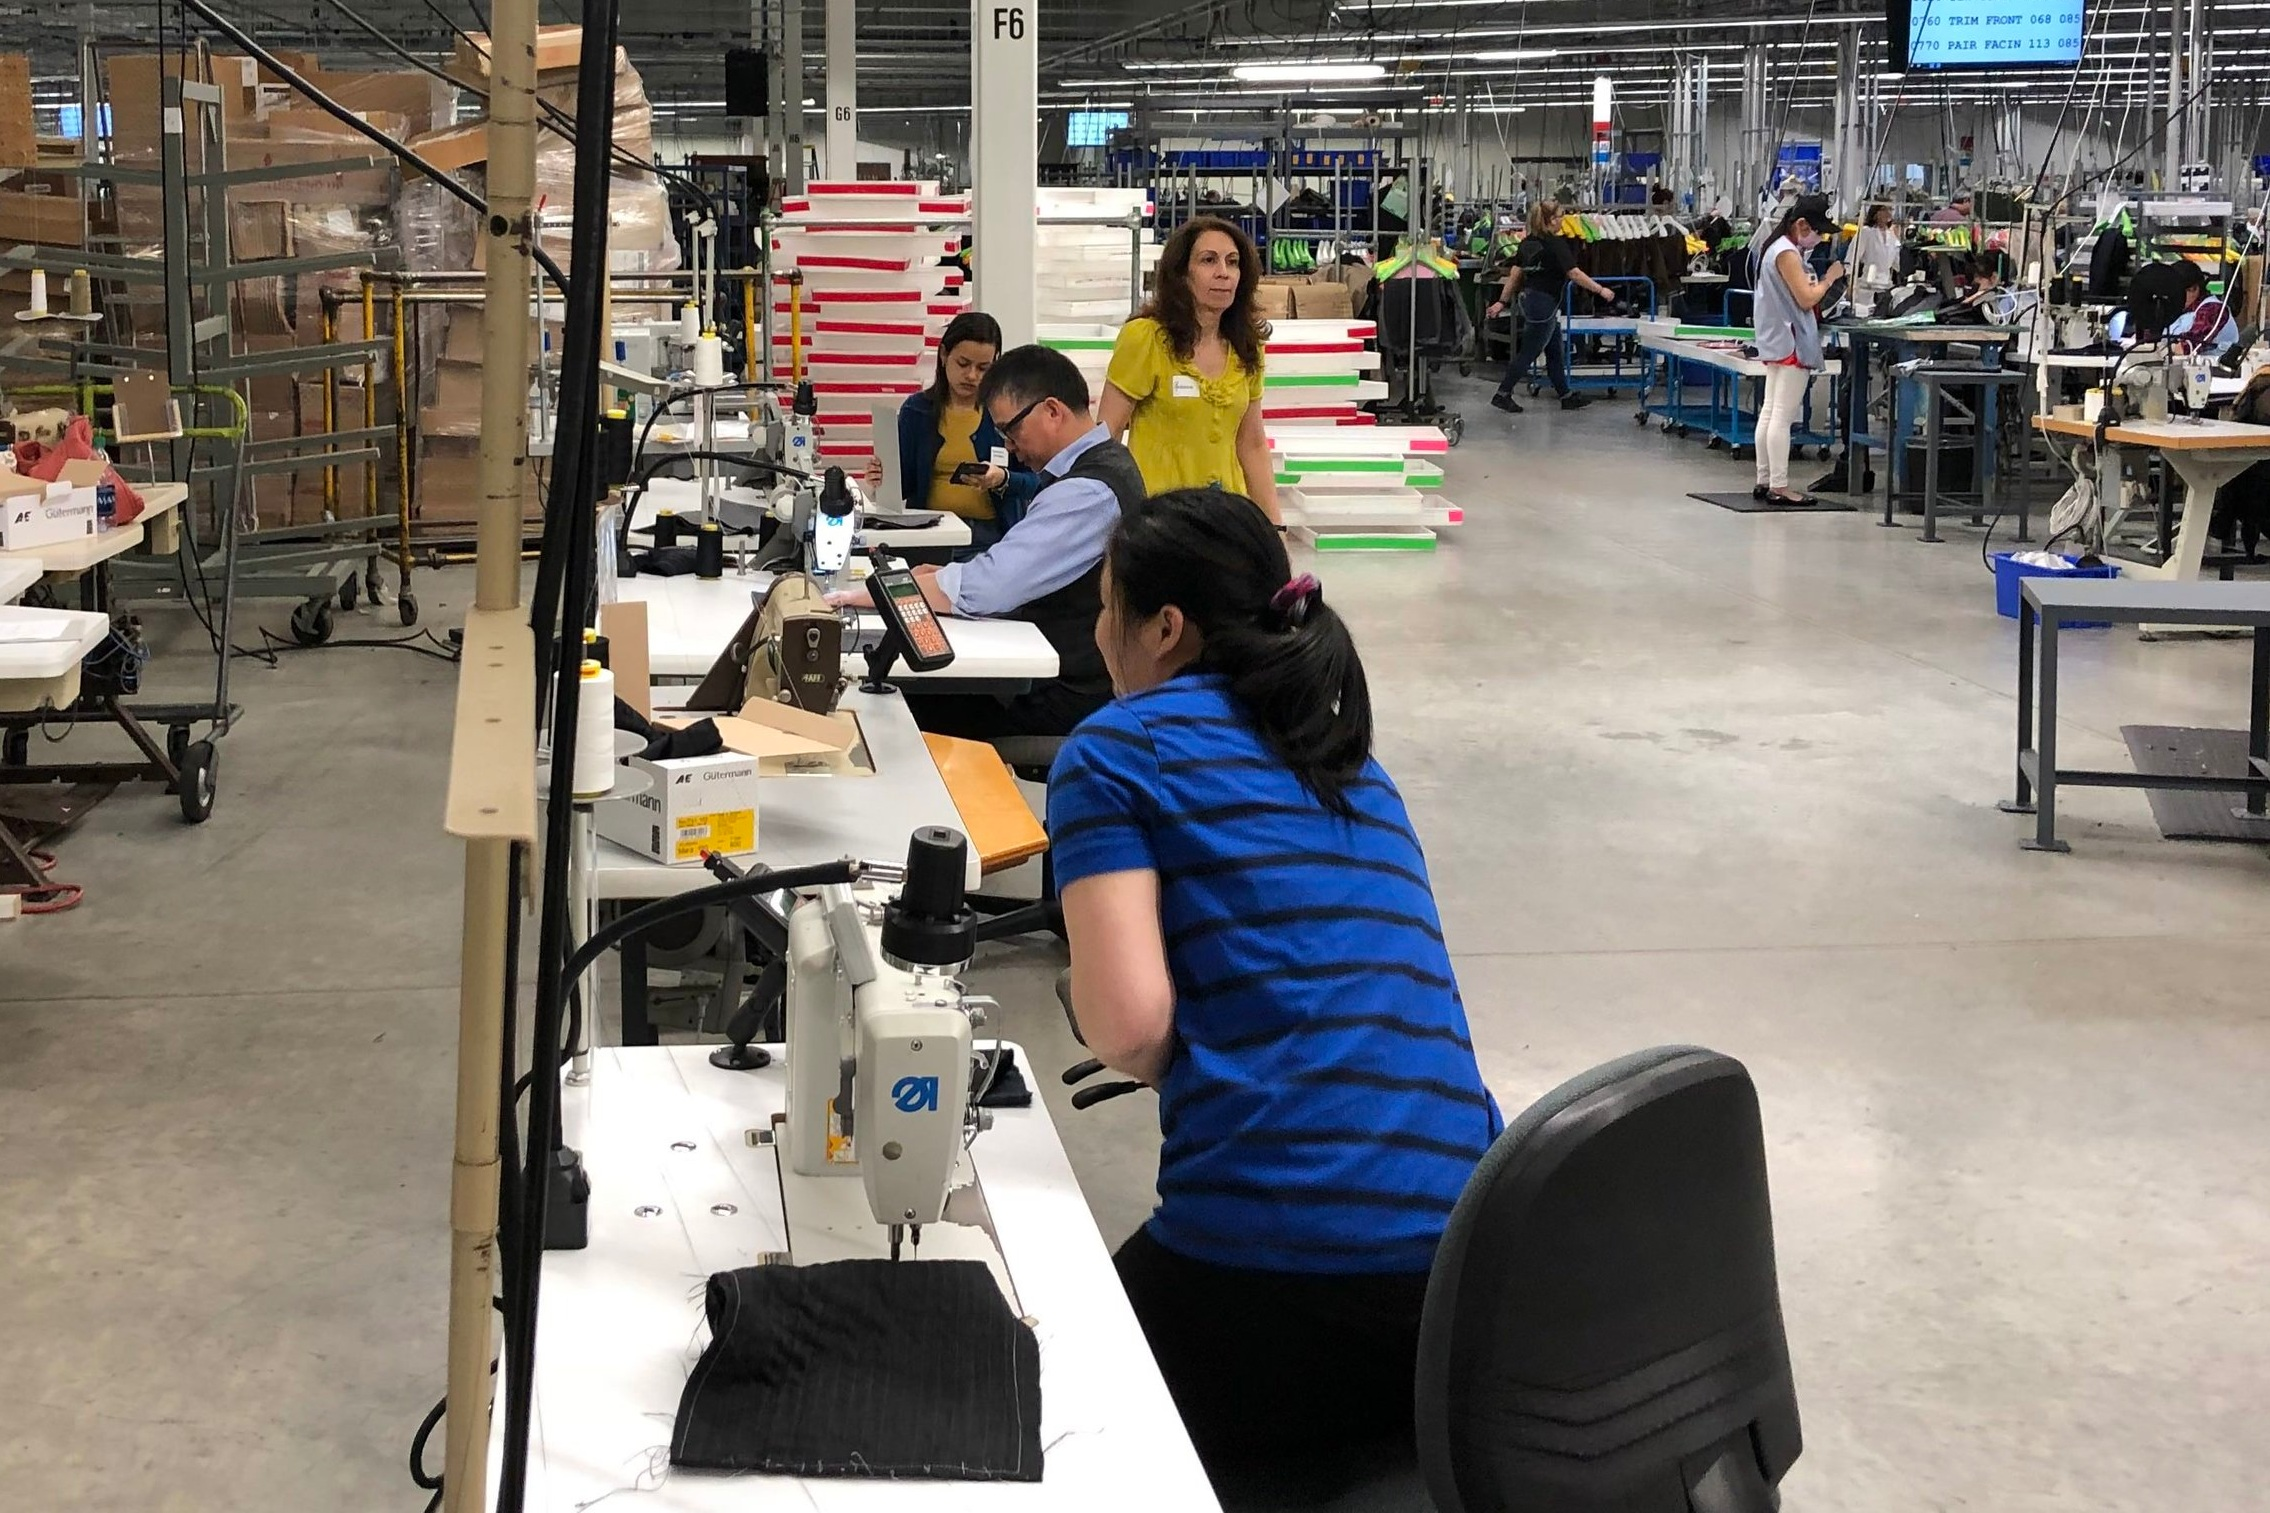 Find your place - Historically for Asian and immigrant community and new immigrant, the manufacturing industry has been a place that enabled their skills to flourish. For those who have backgrounds in sewing, QARI connects them with employment opportunities catered to their strengths.